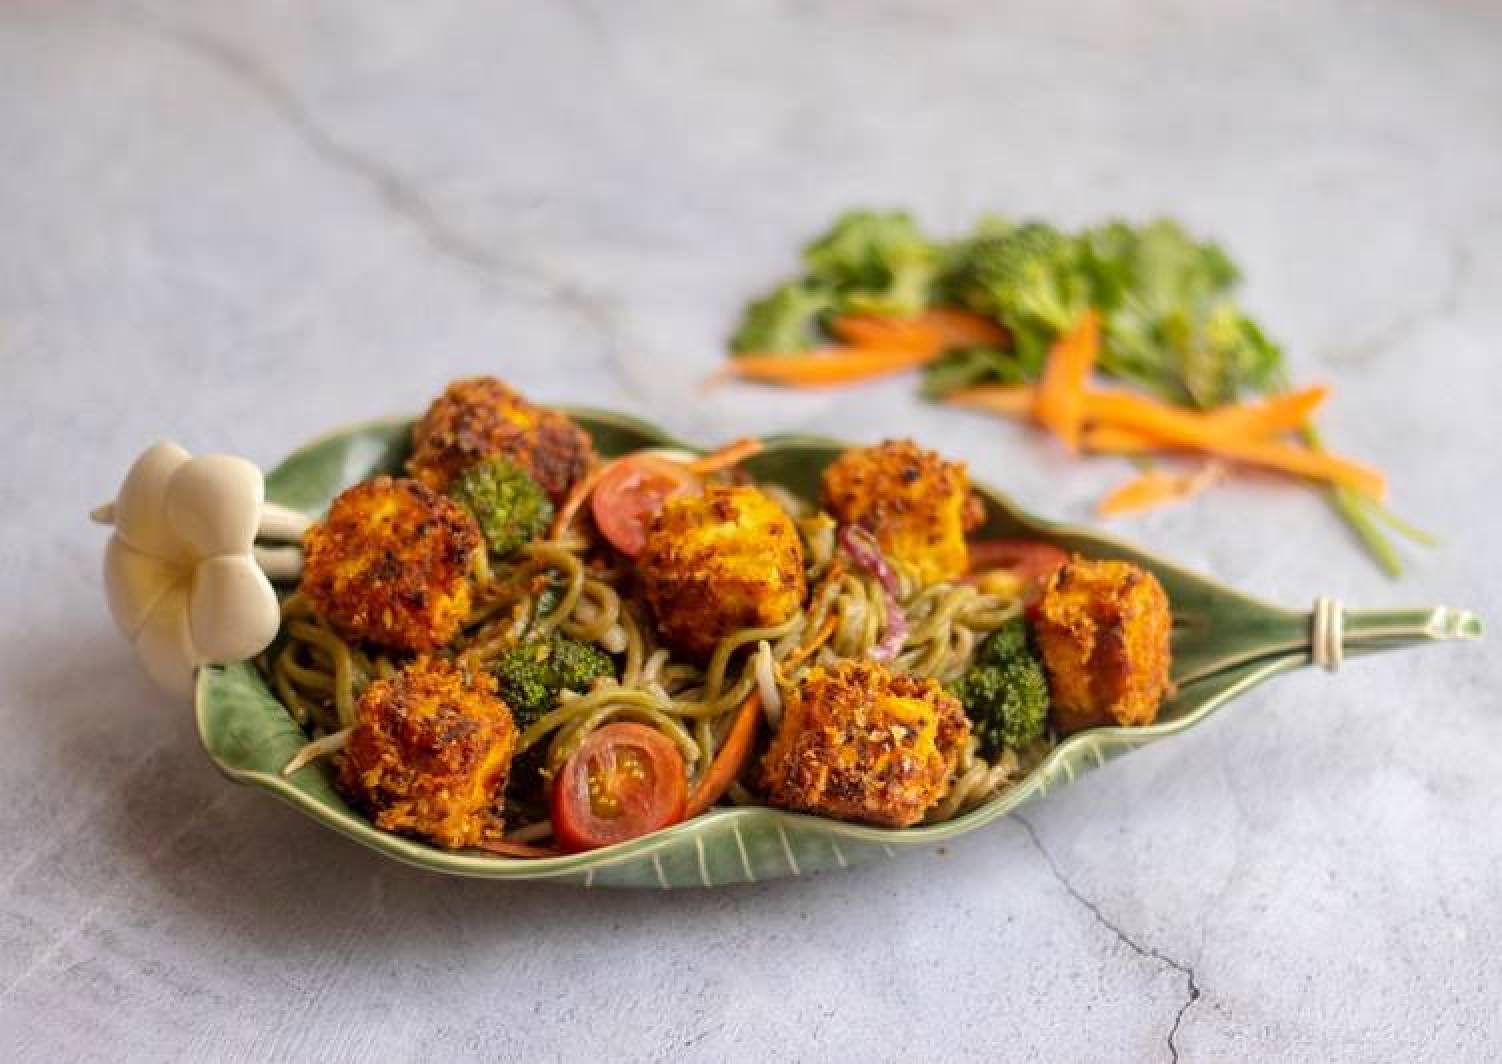 Pea noodle Stir fried with crispy mustard and turmeric tofu